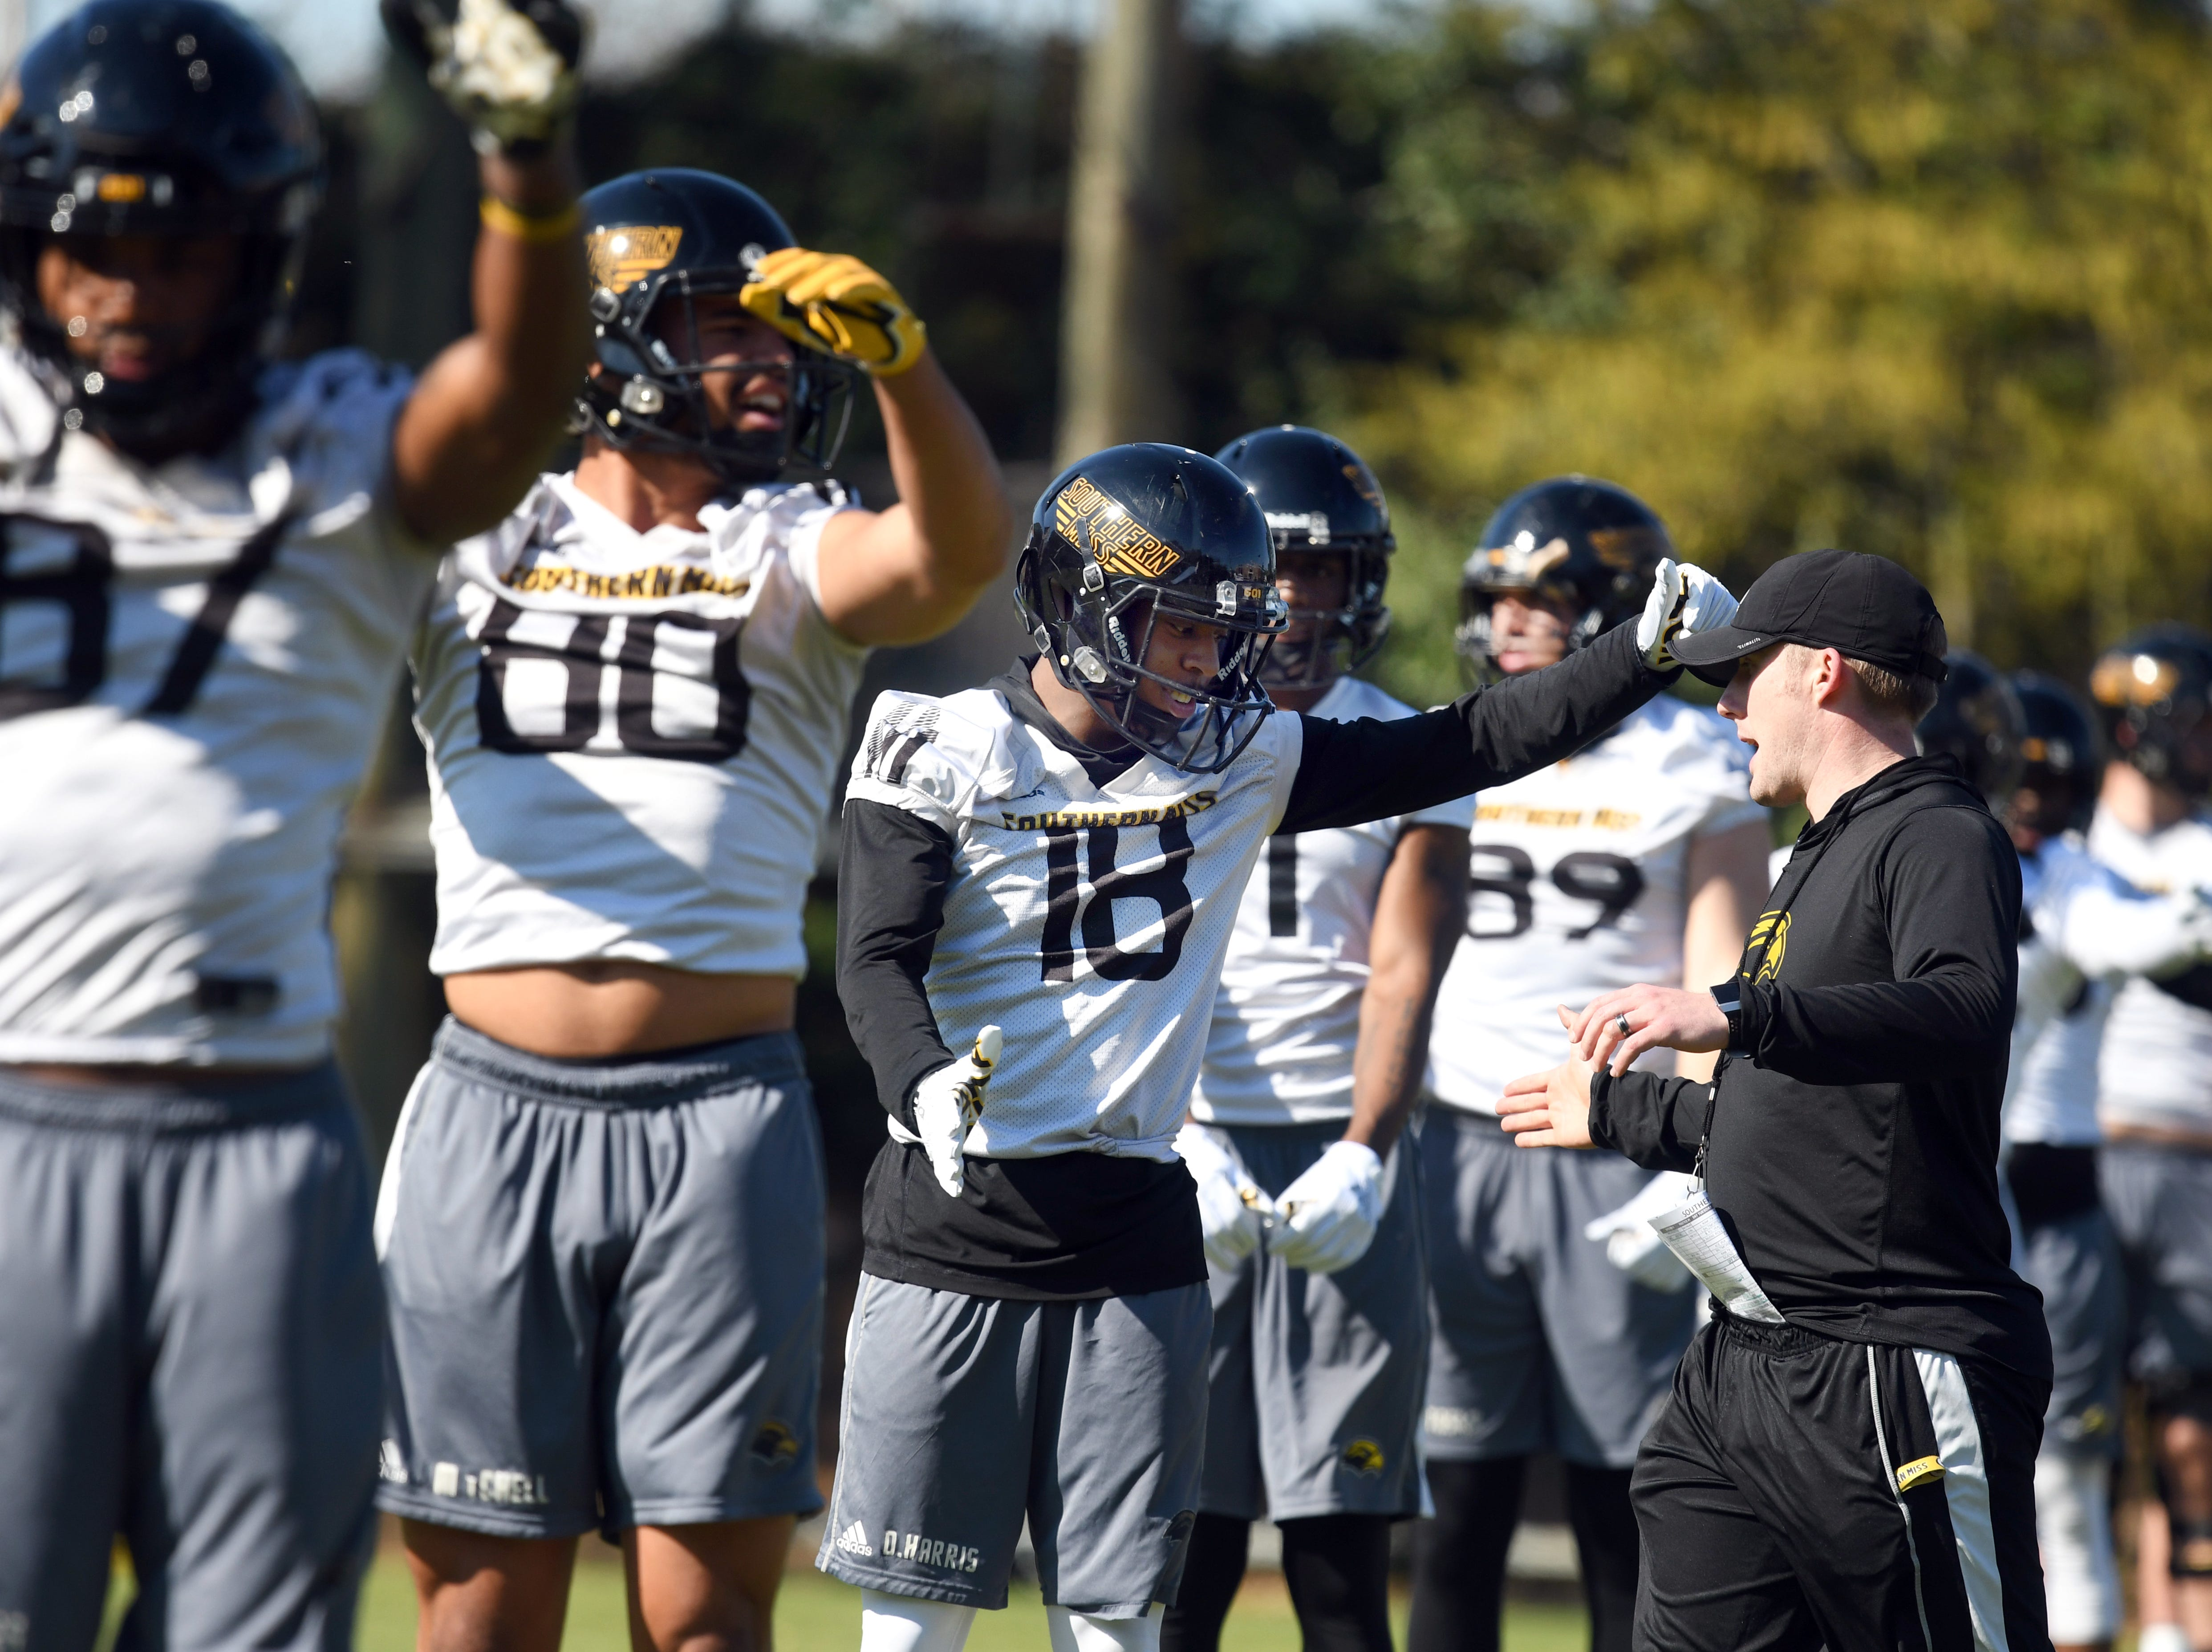 Southern Miss wide receivers coach Scotty Walden hypes up De'Michael Harris during the first day of spring practice in Hattiesburg on Tuesday, March 19, 2019.